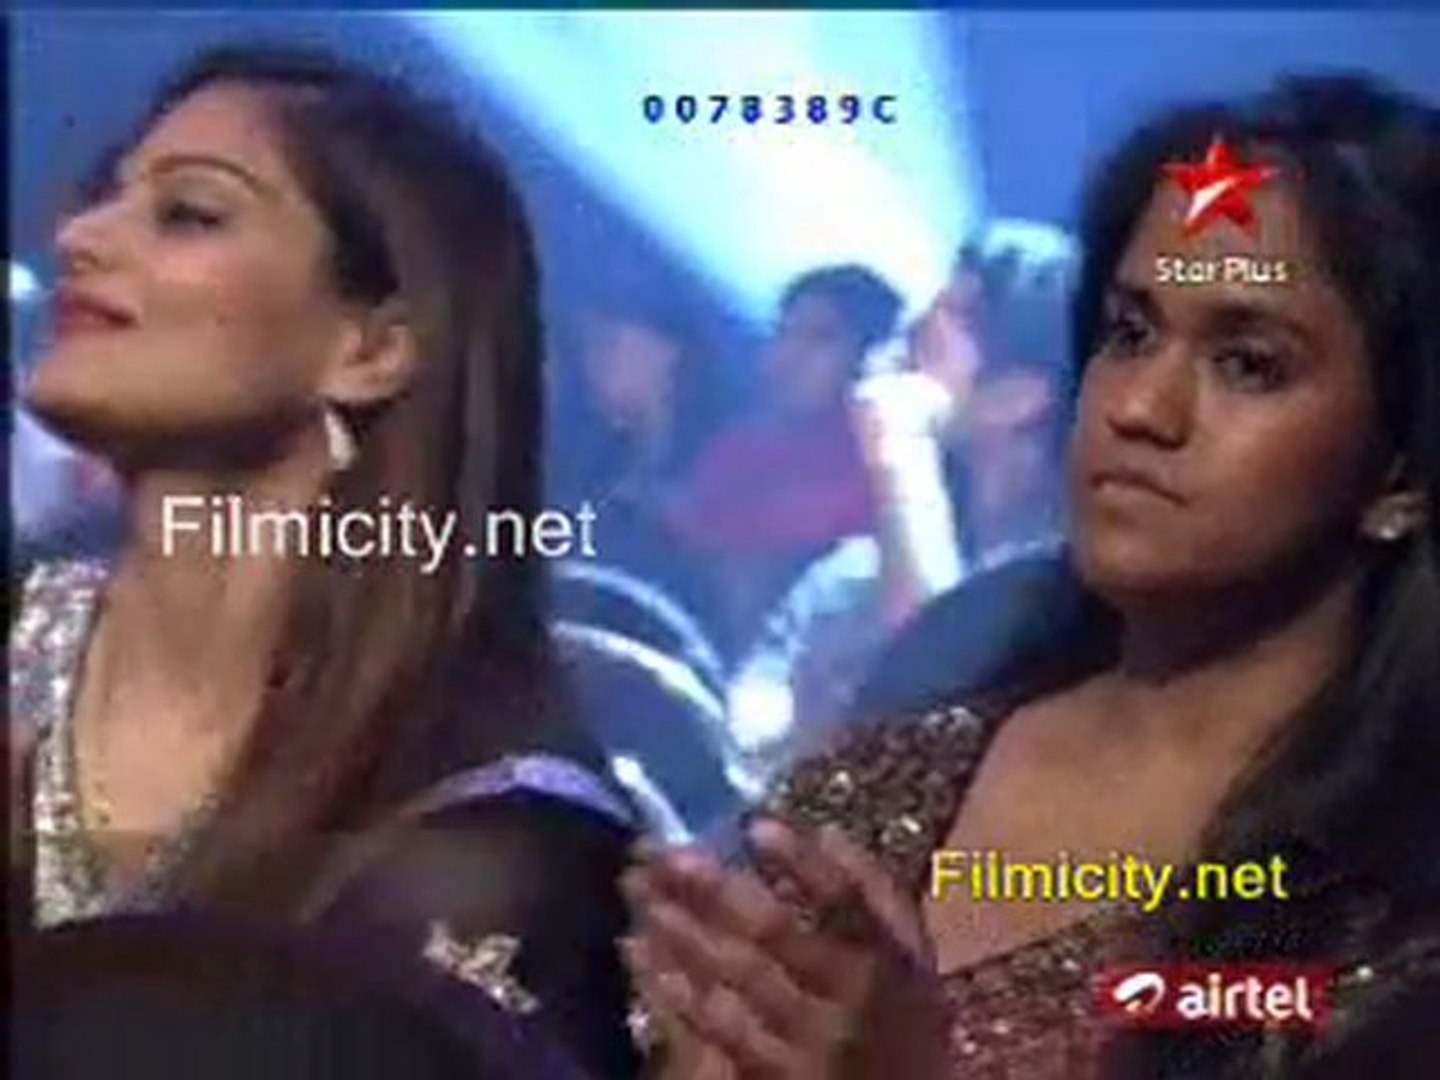 Airtel Super Star Awards 2011 - 27th November 2011 Video Watch - pt8